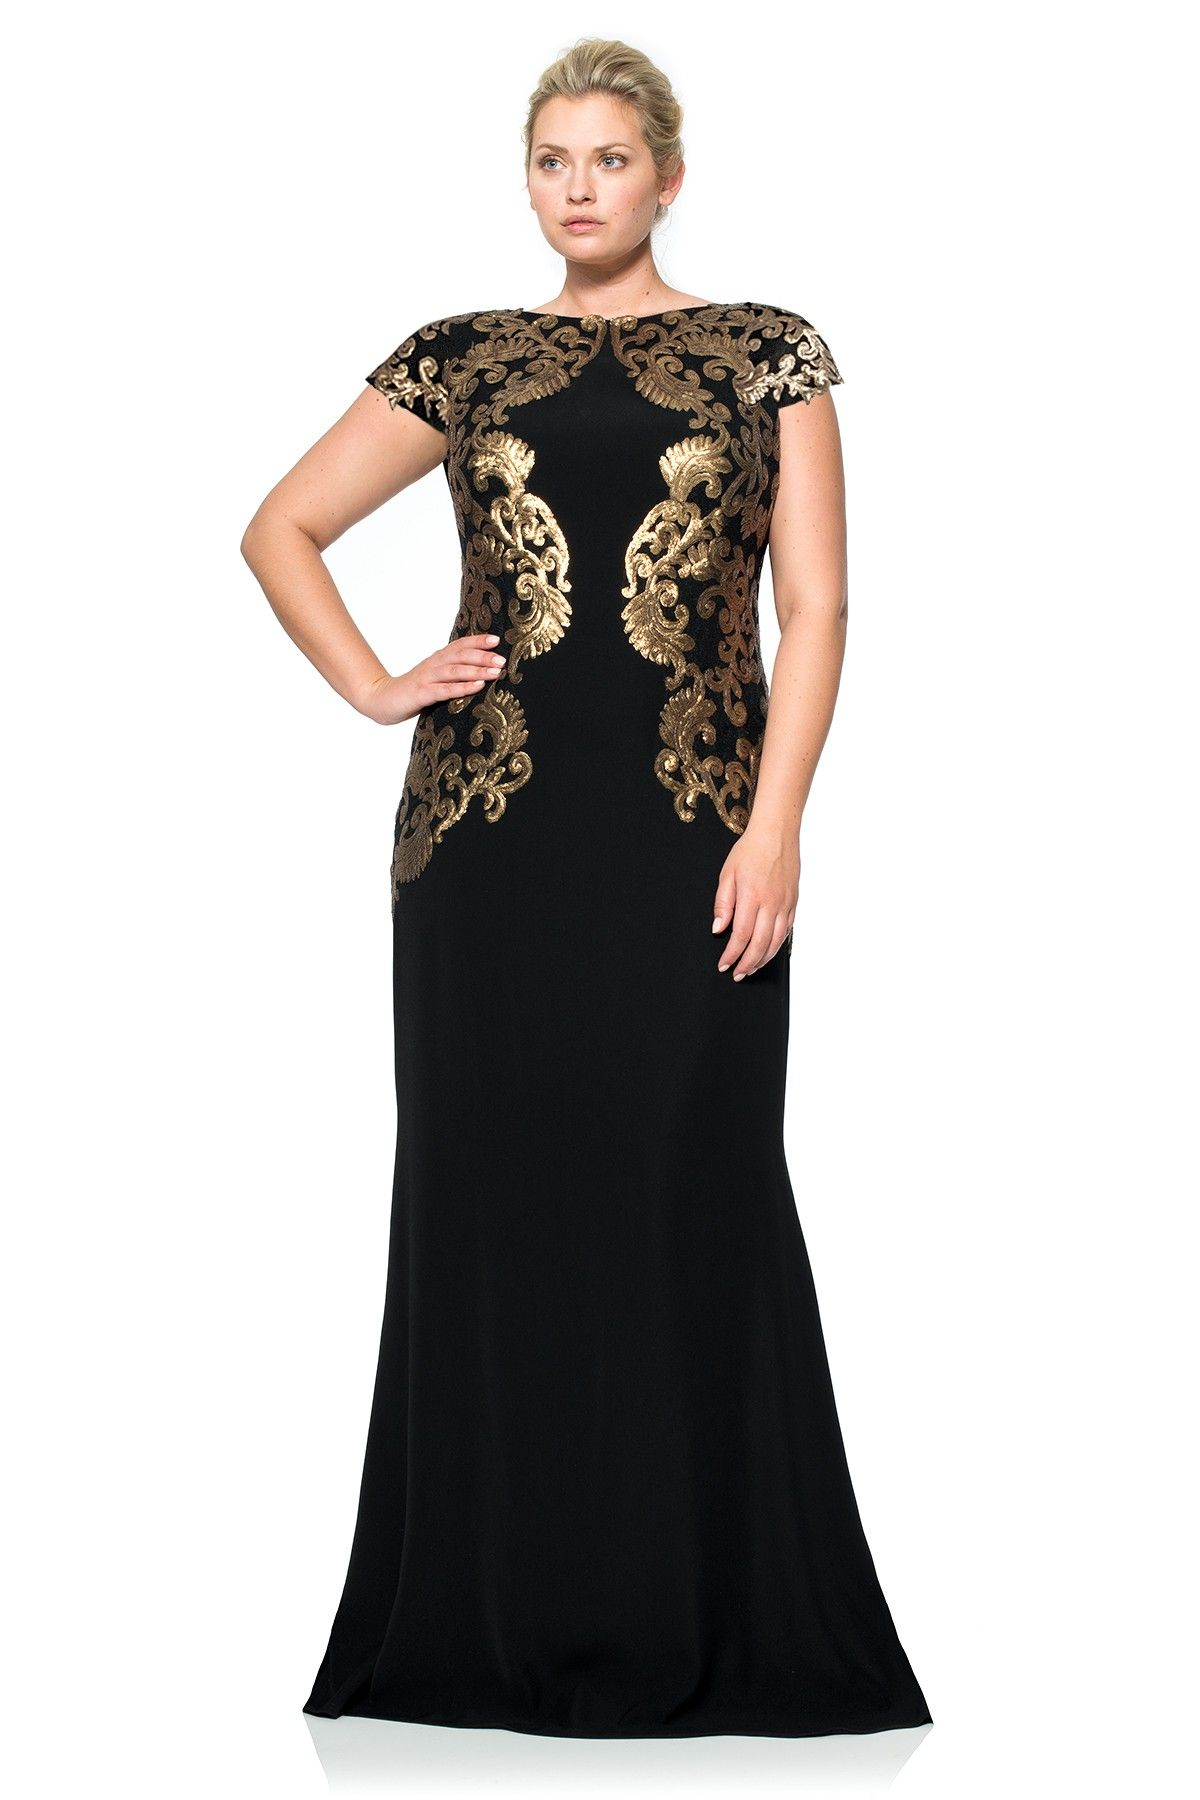 Crepe draped open back gown with metallic paillette detail plus